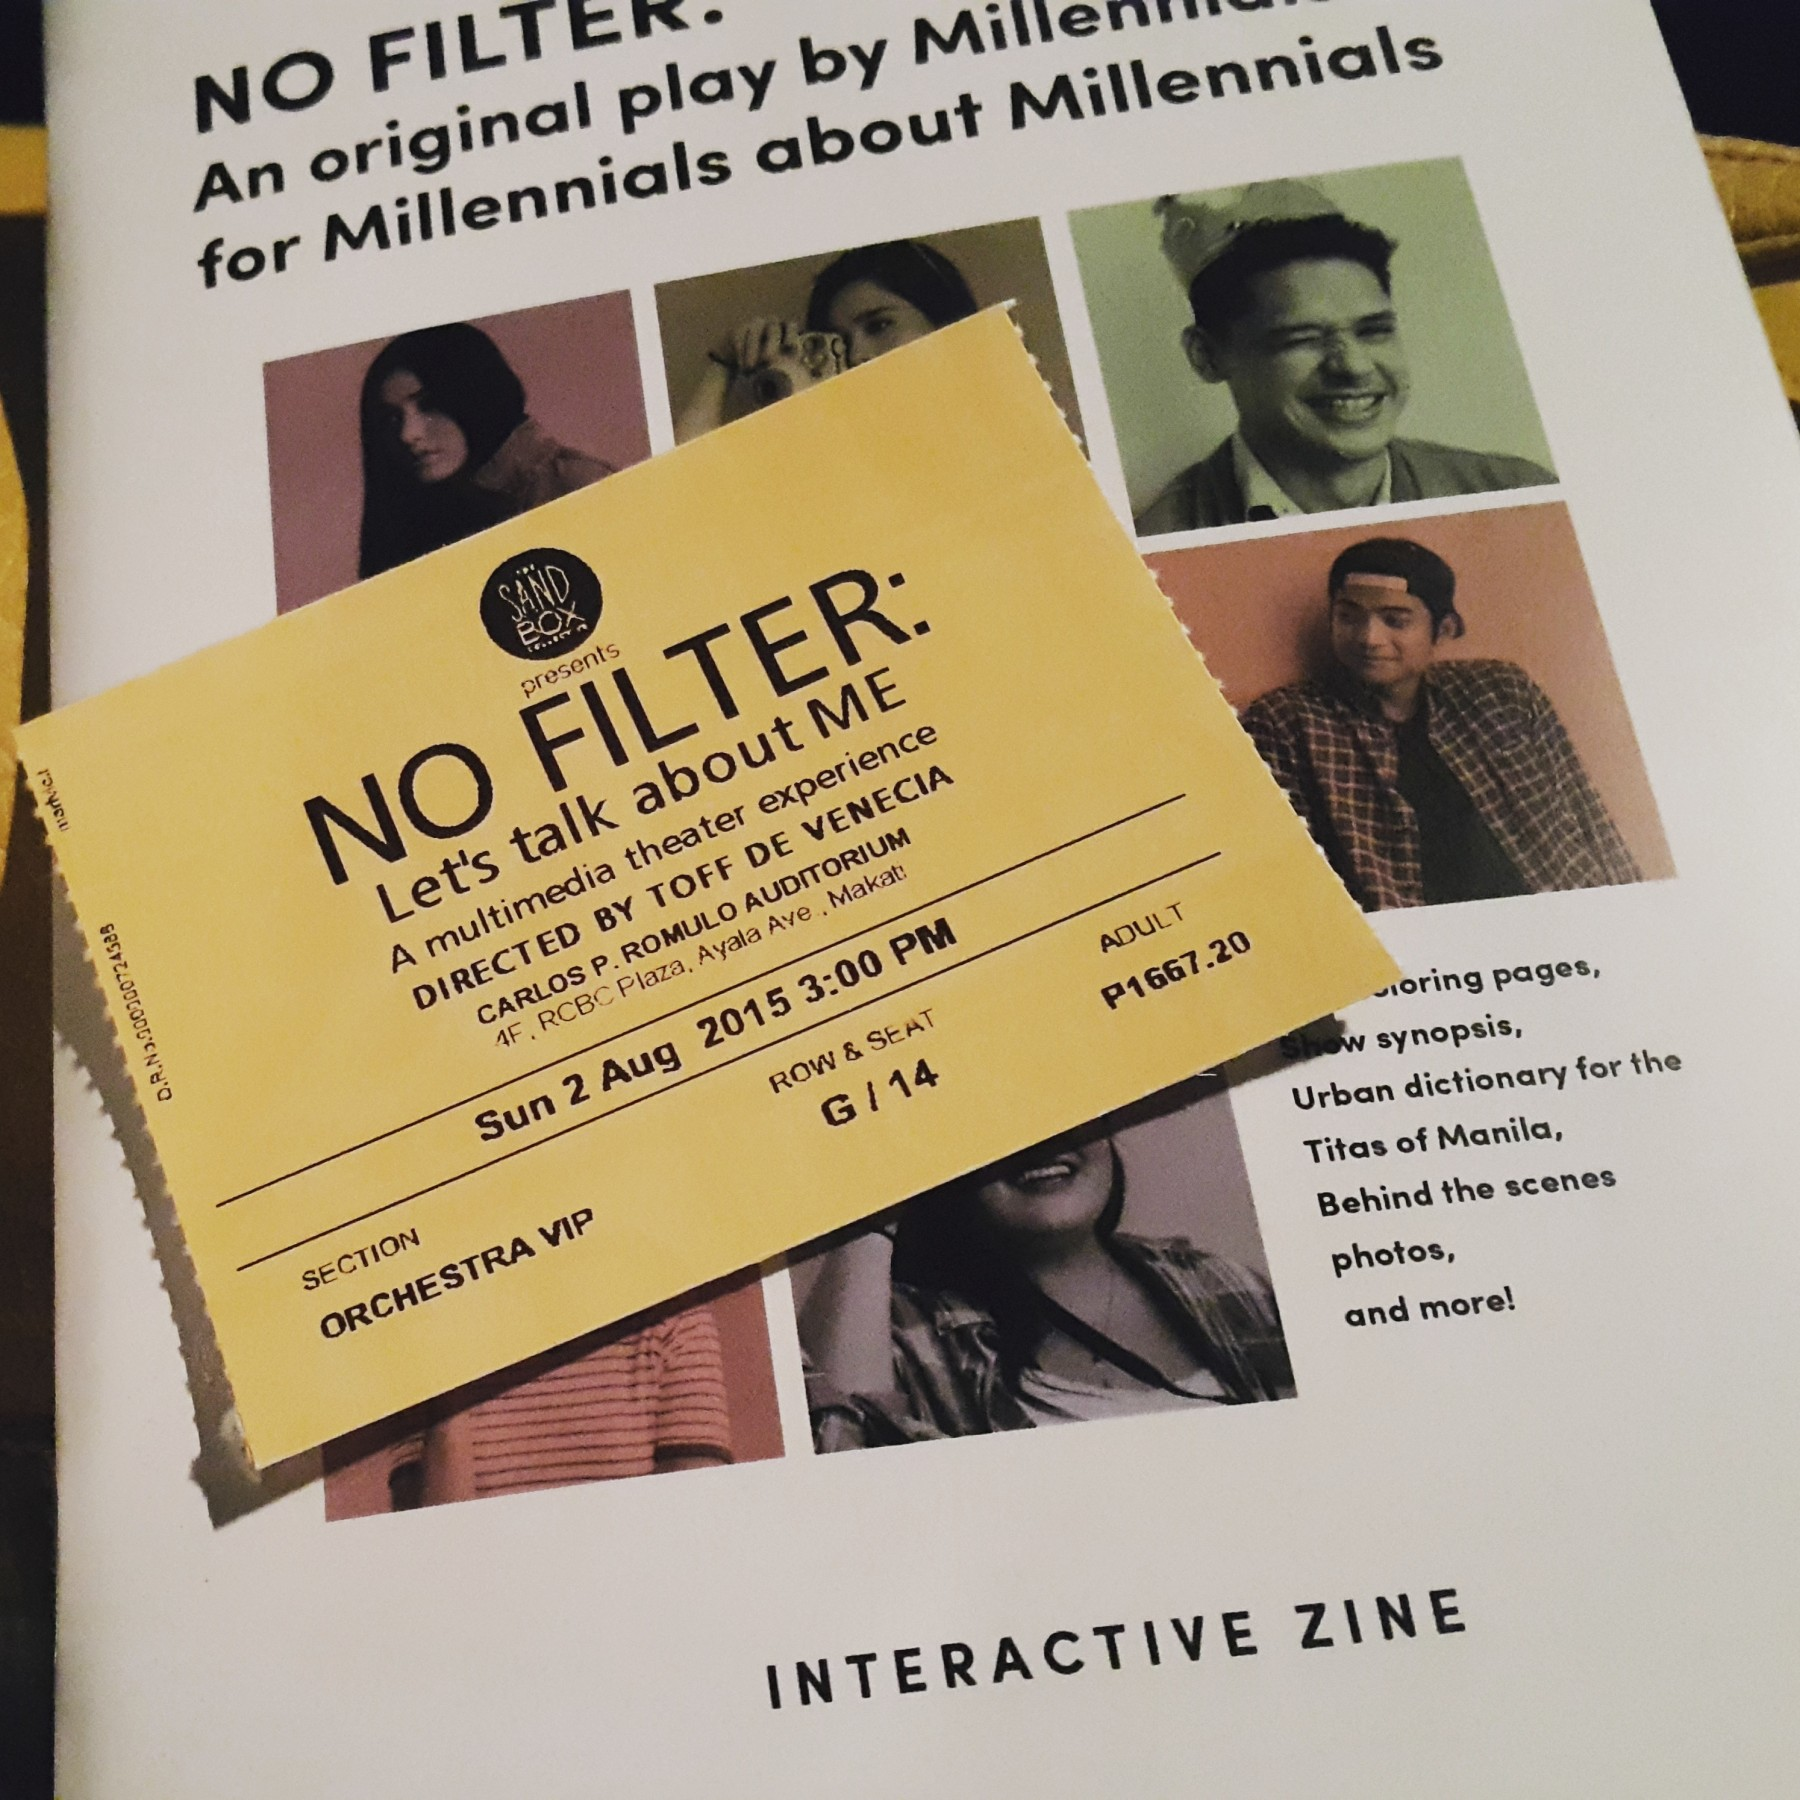 NO FILTER: An original play by Millennials about Millennials